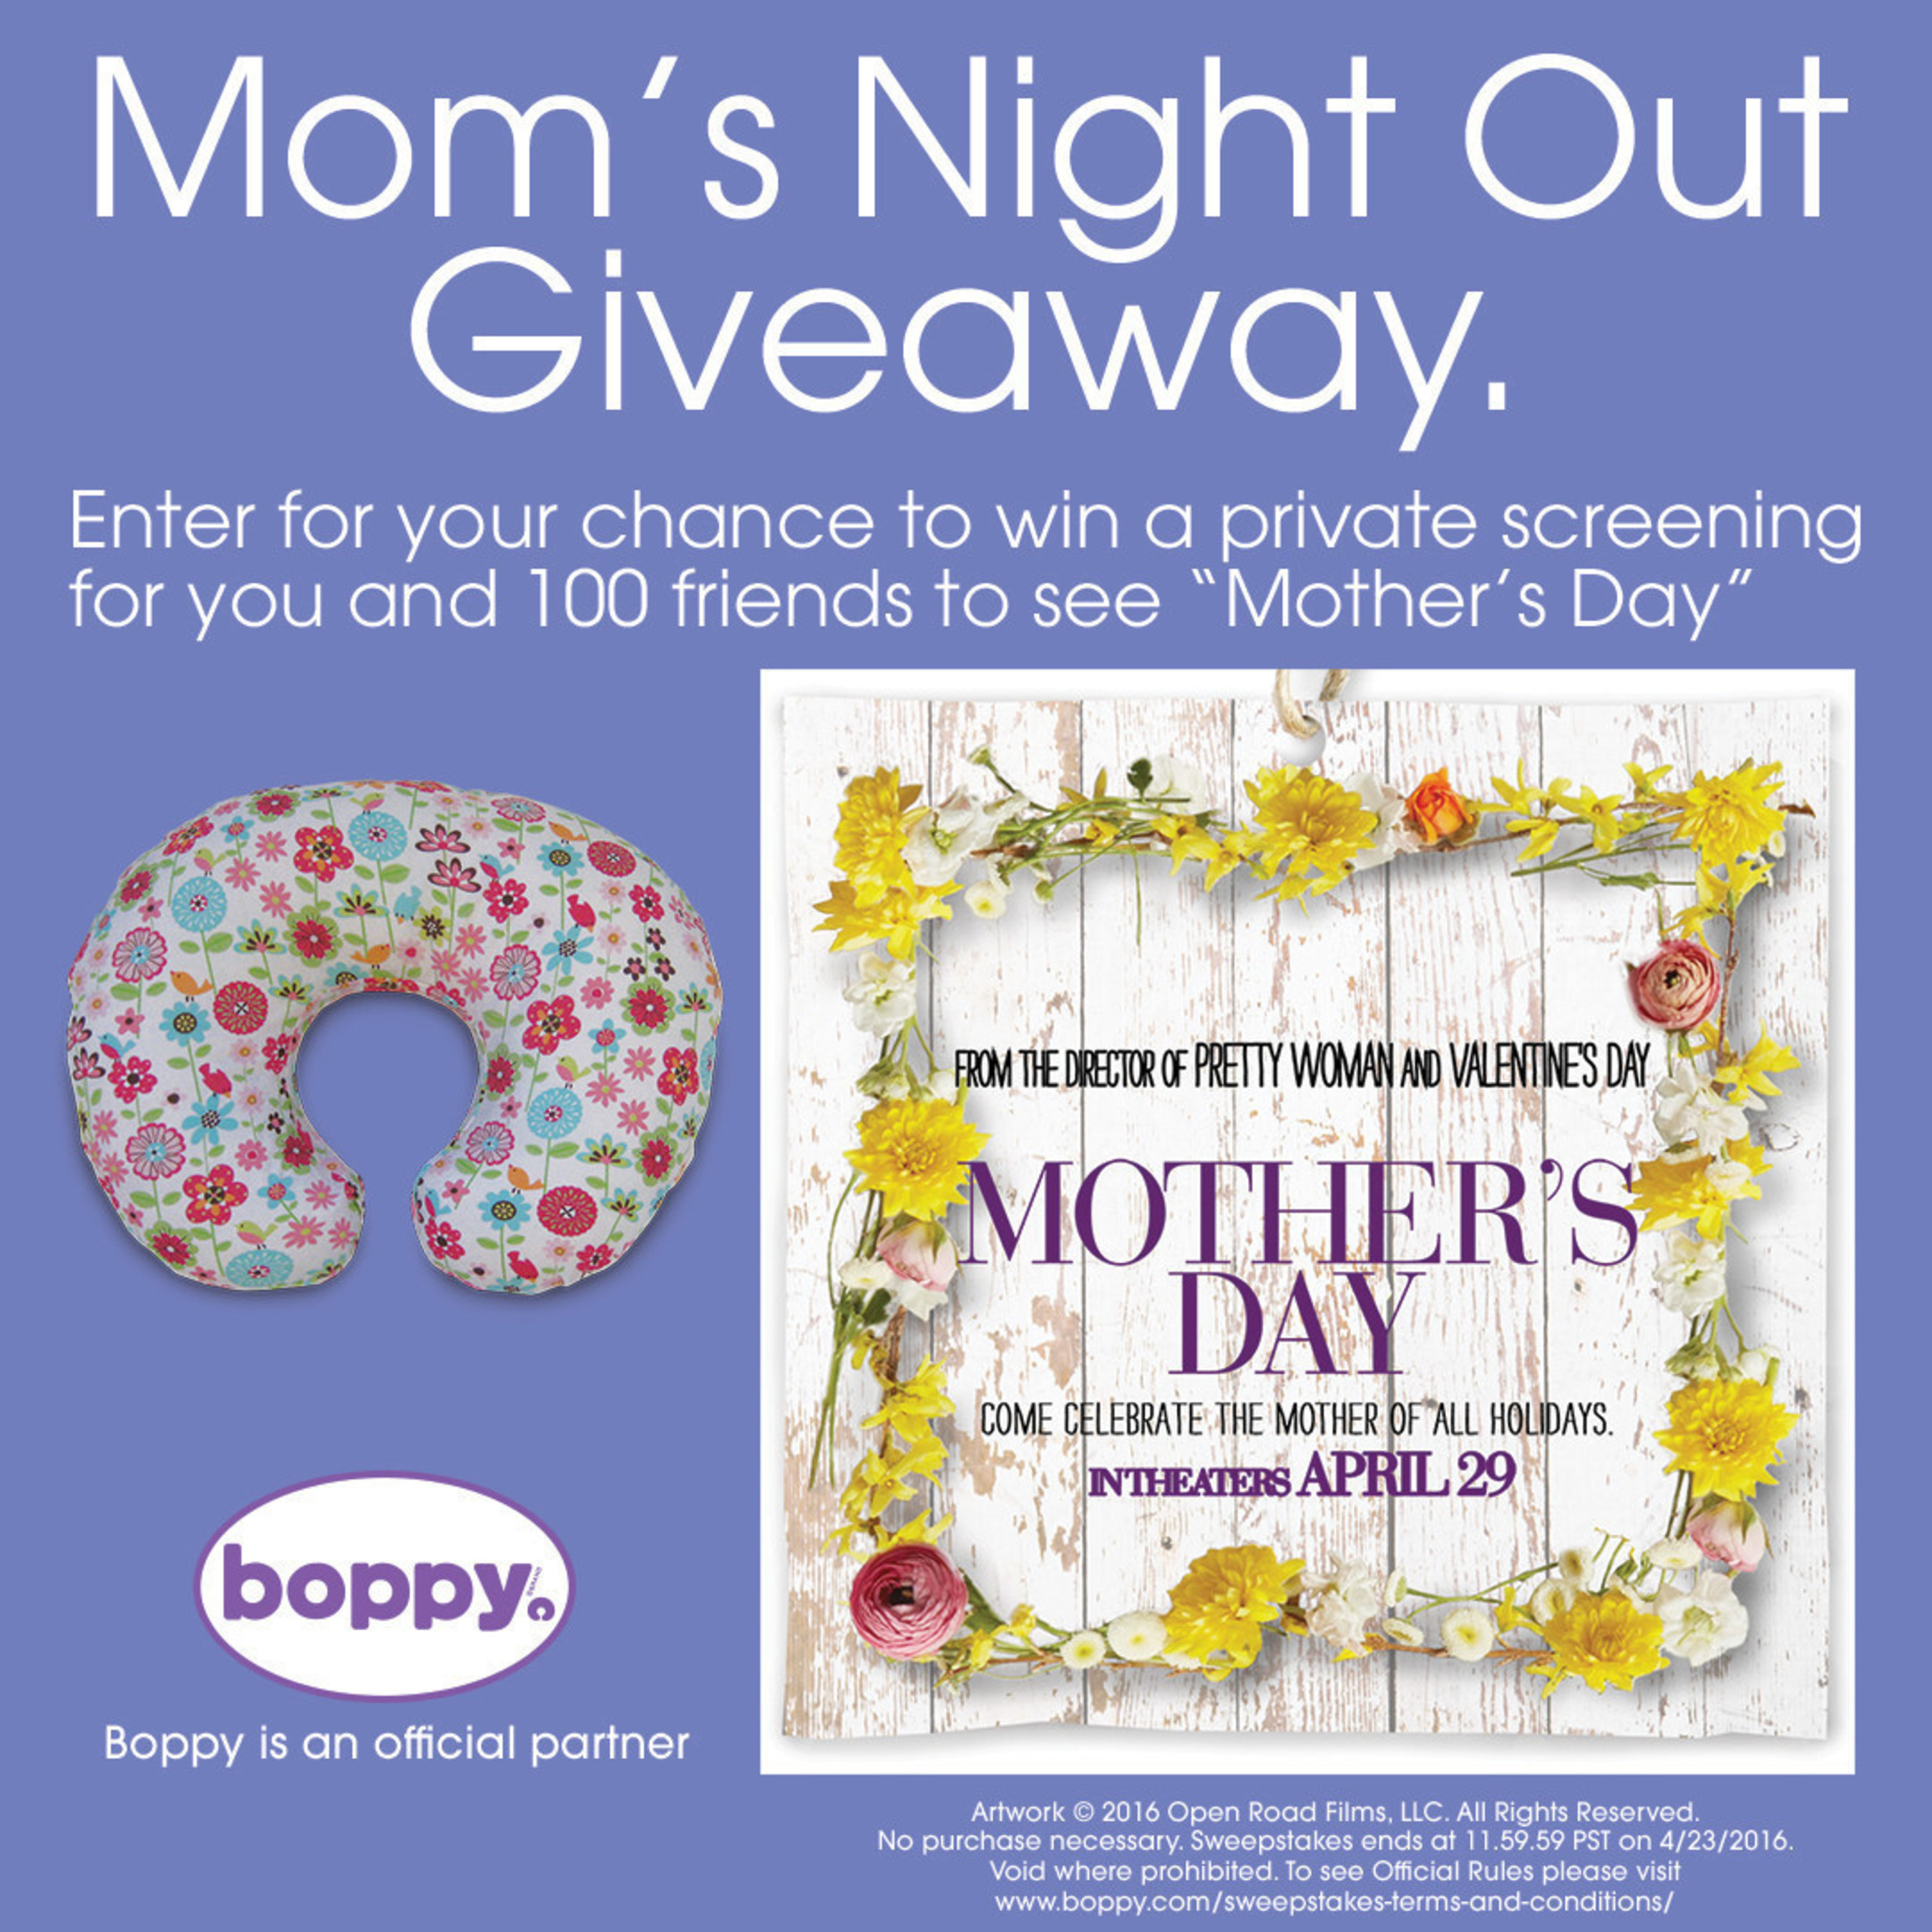 Boppy Mom's Night Out Giveaway